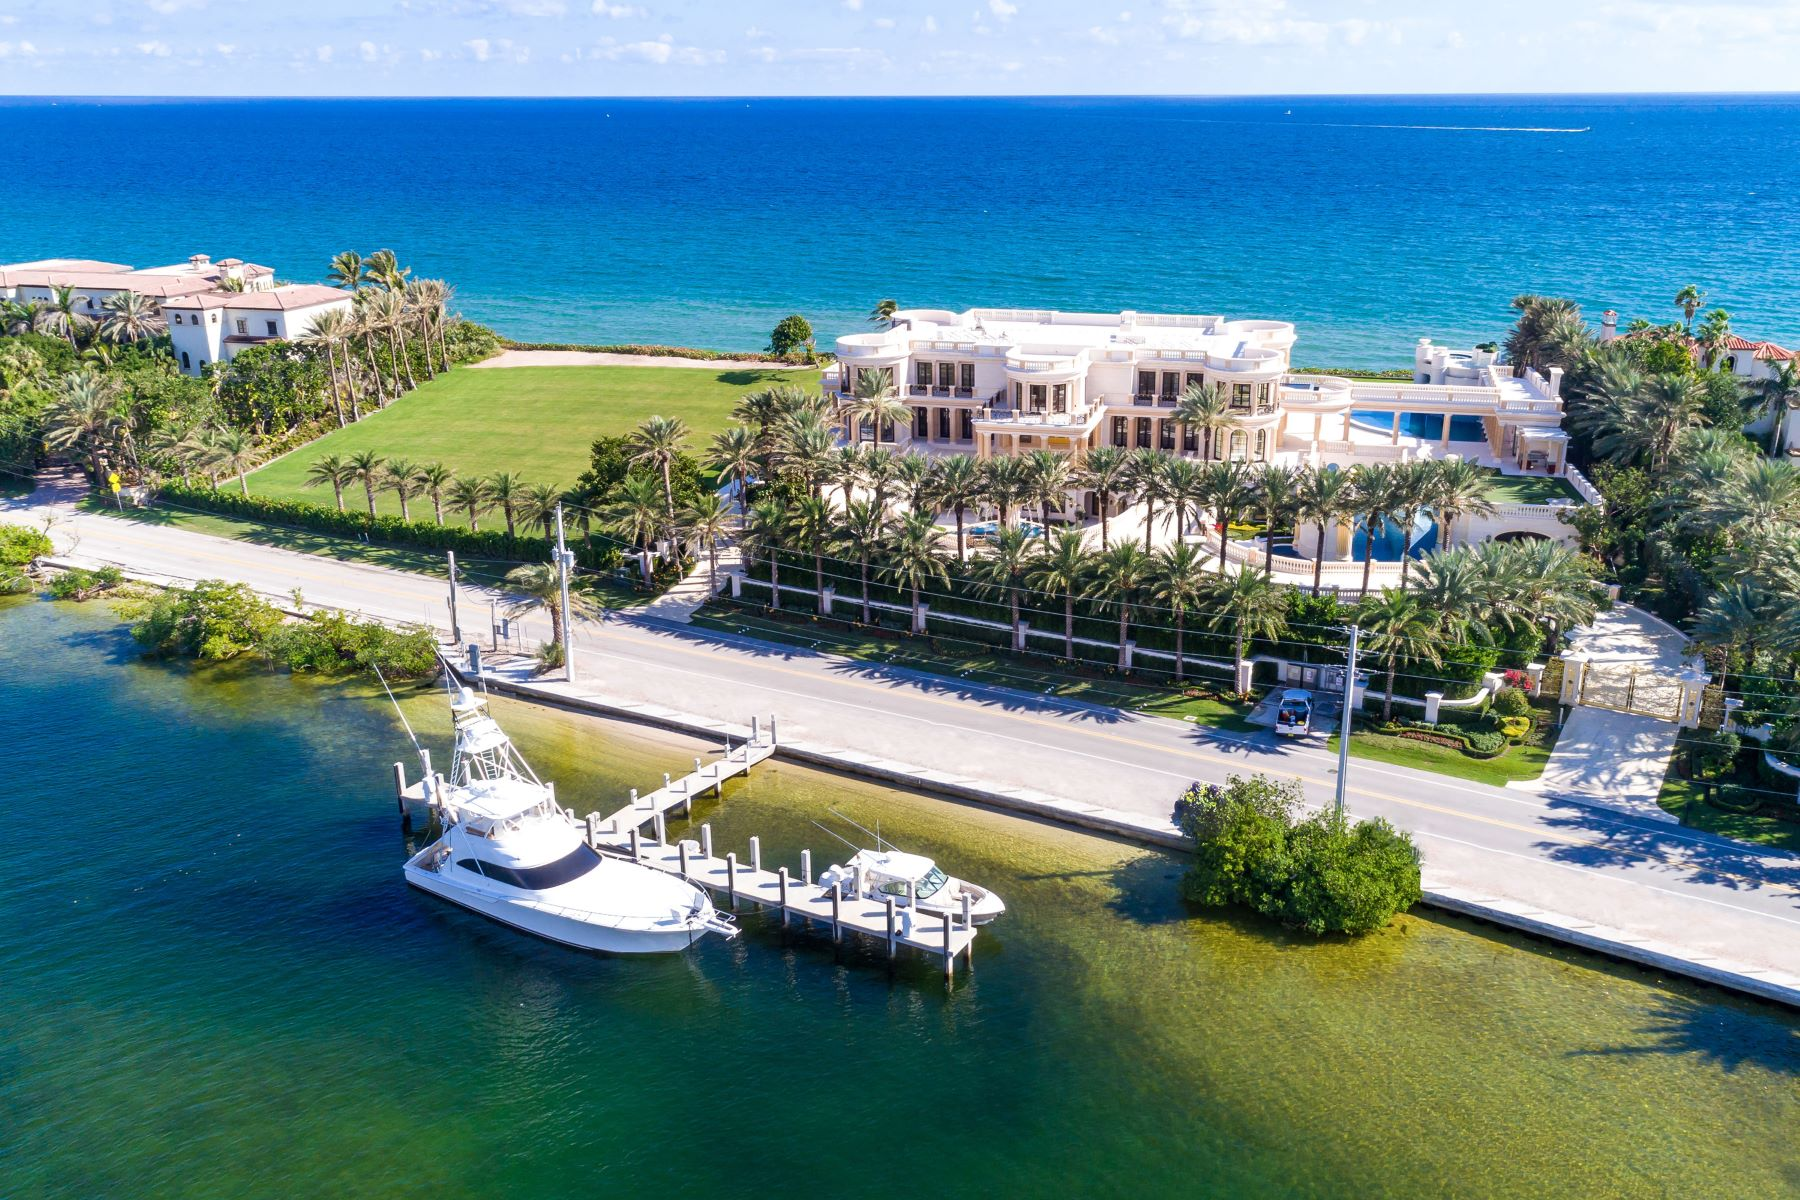 Additional photo for property listing at 935 Hillsboro Miles 935 Hillsboro Miles Hillsboro Beach, Florida 33062 United States